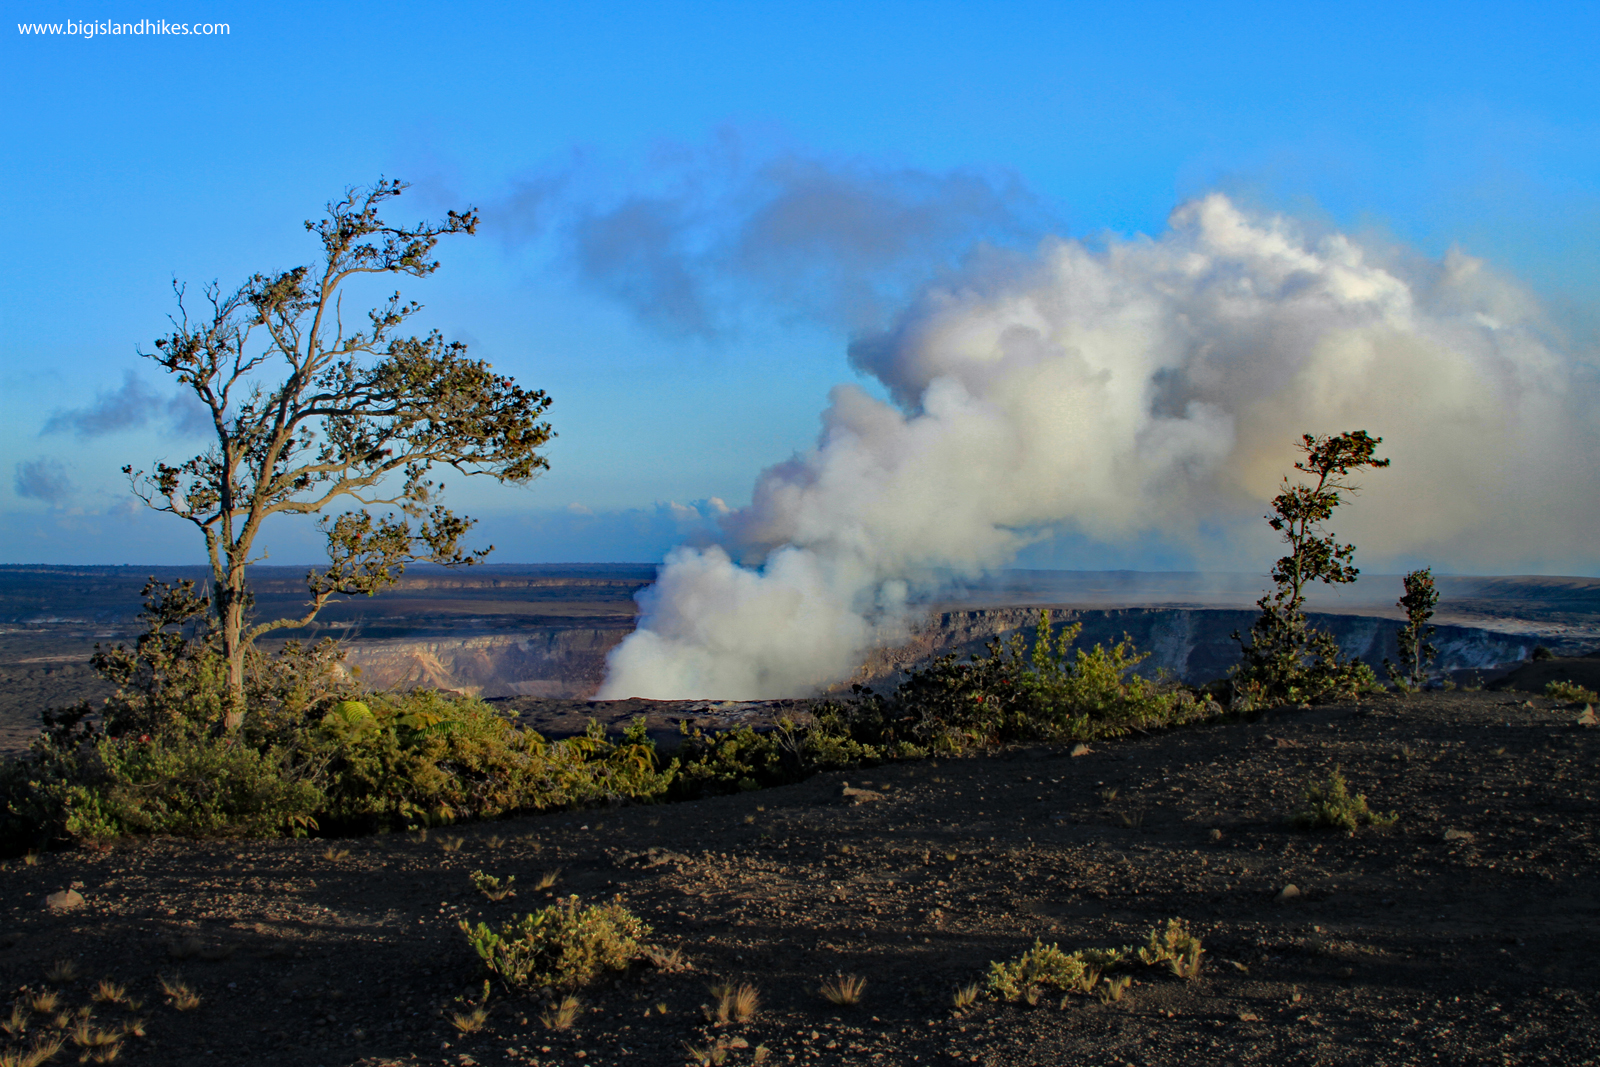 hawaii big island lava photo 6.jpg